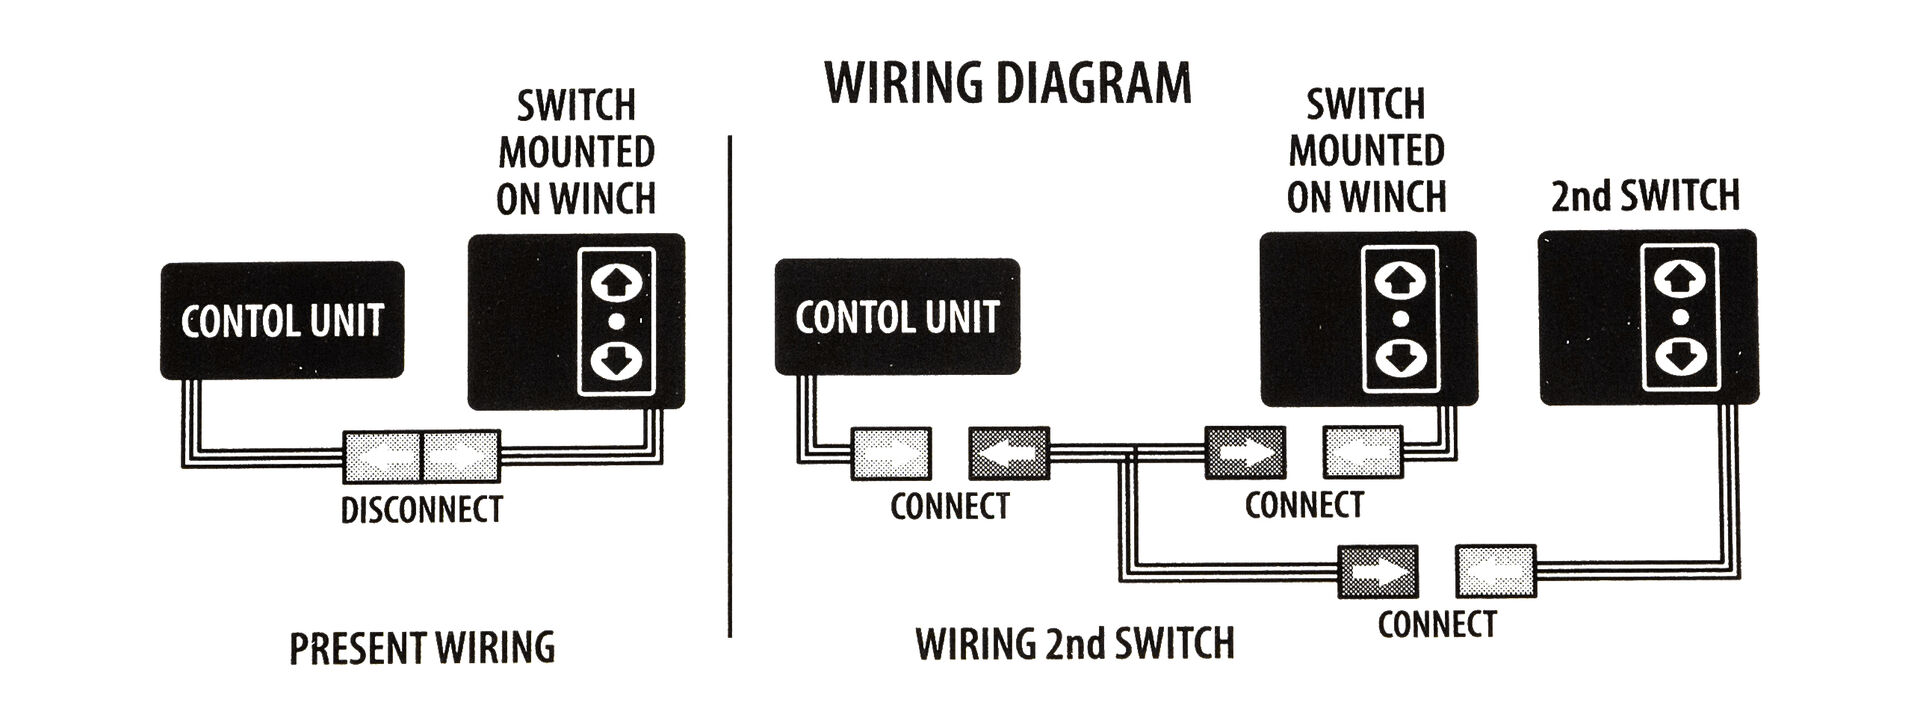 panel remote for winches trac, winc21pan f25 Boat Anchor Winch Wiring Diagram For  Trac Winch Parts Minn Kota Anchor Winch Electric Boat Anchor